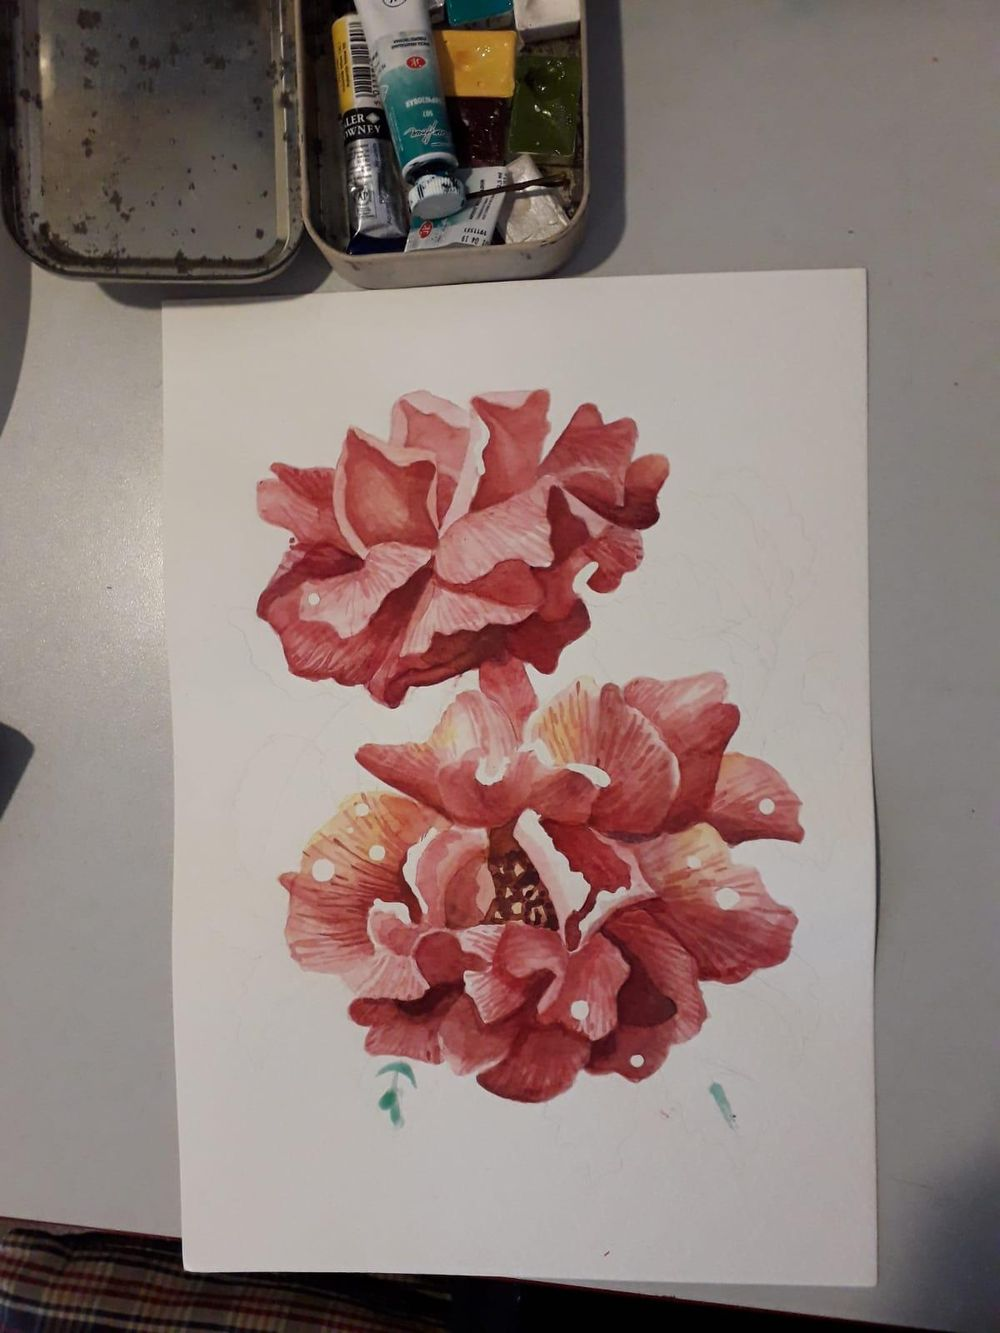 rose - image 2 - student project